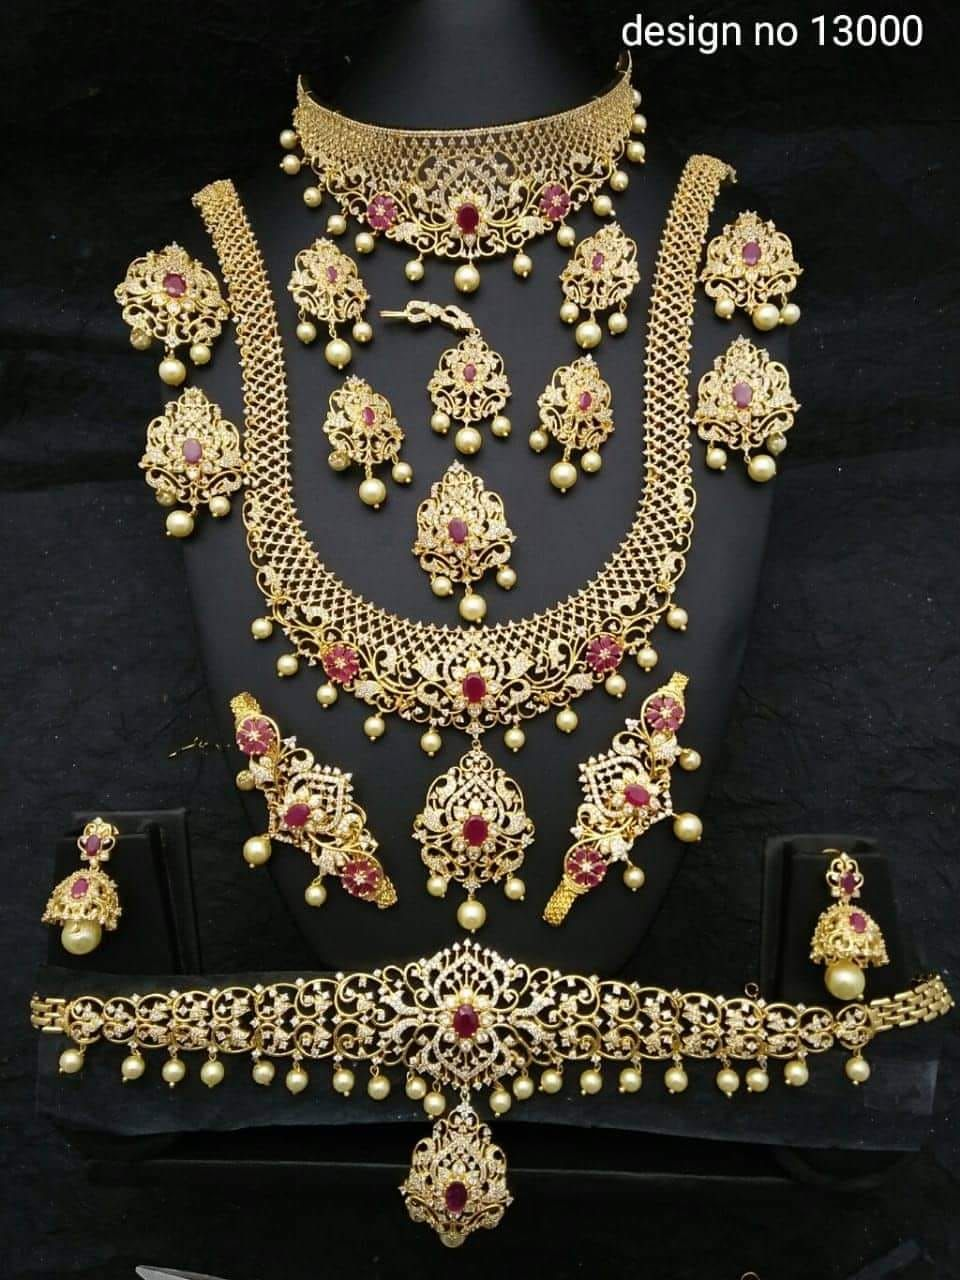 Bridal Jewelry Rental Whatsapp 9894424770 Bridal Jewelry Gold Jewellery Design Gold Jewelry Necklace